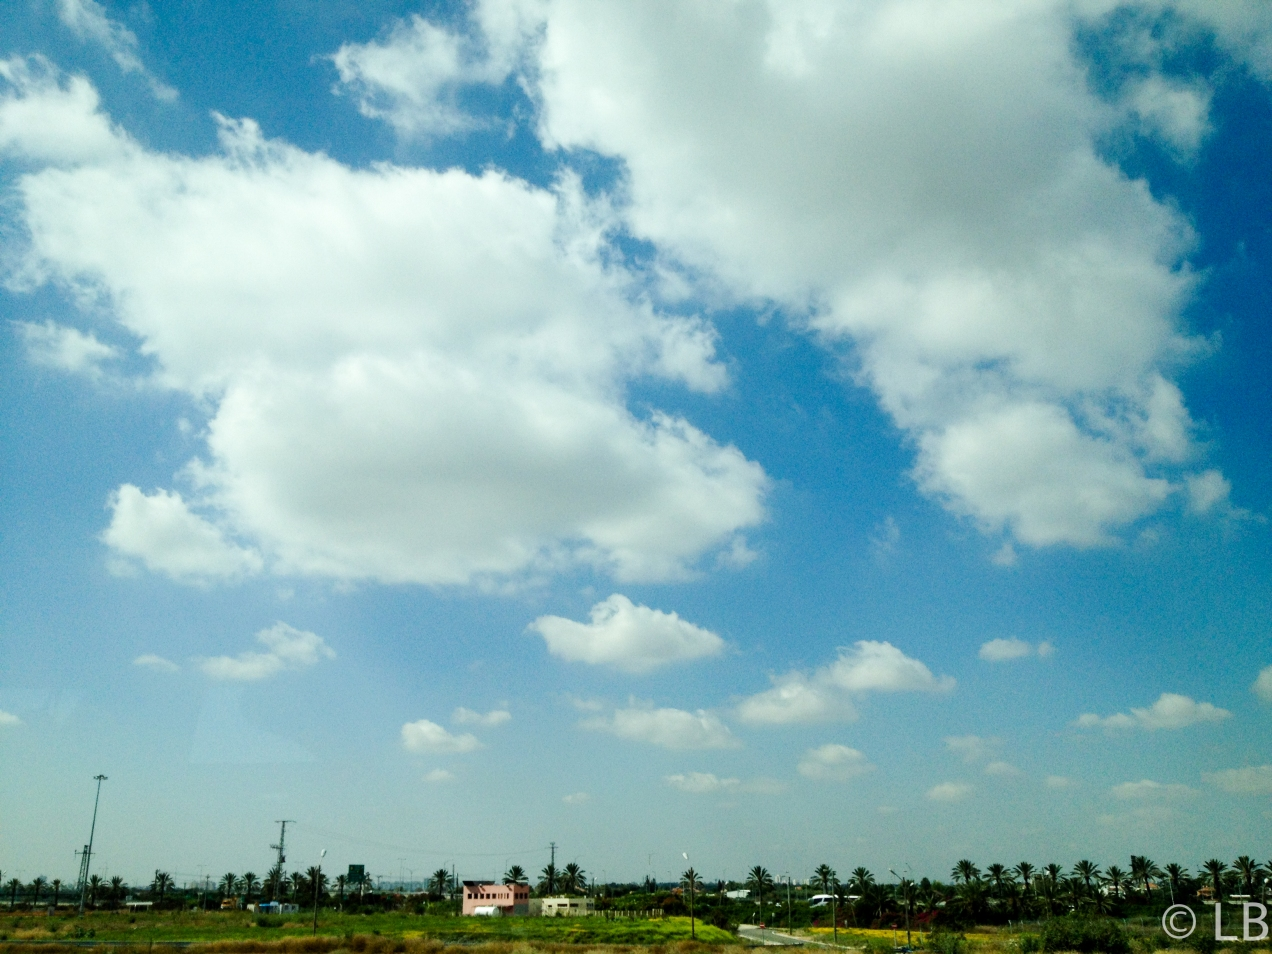 The sky over ... the BGI Airport